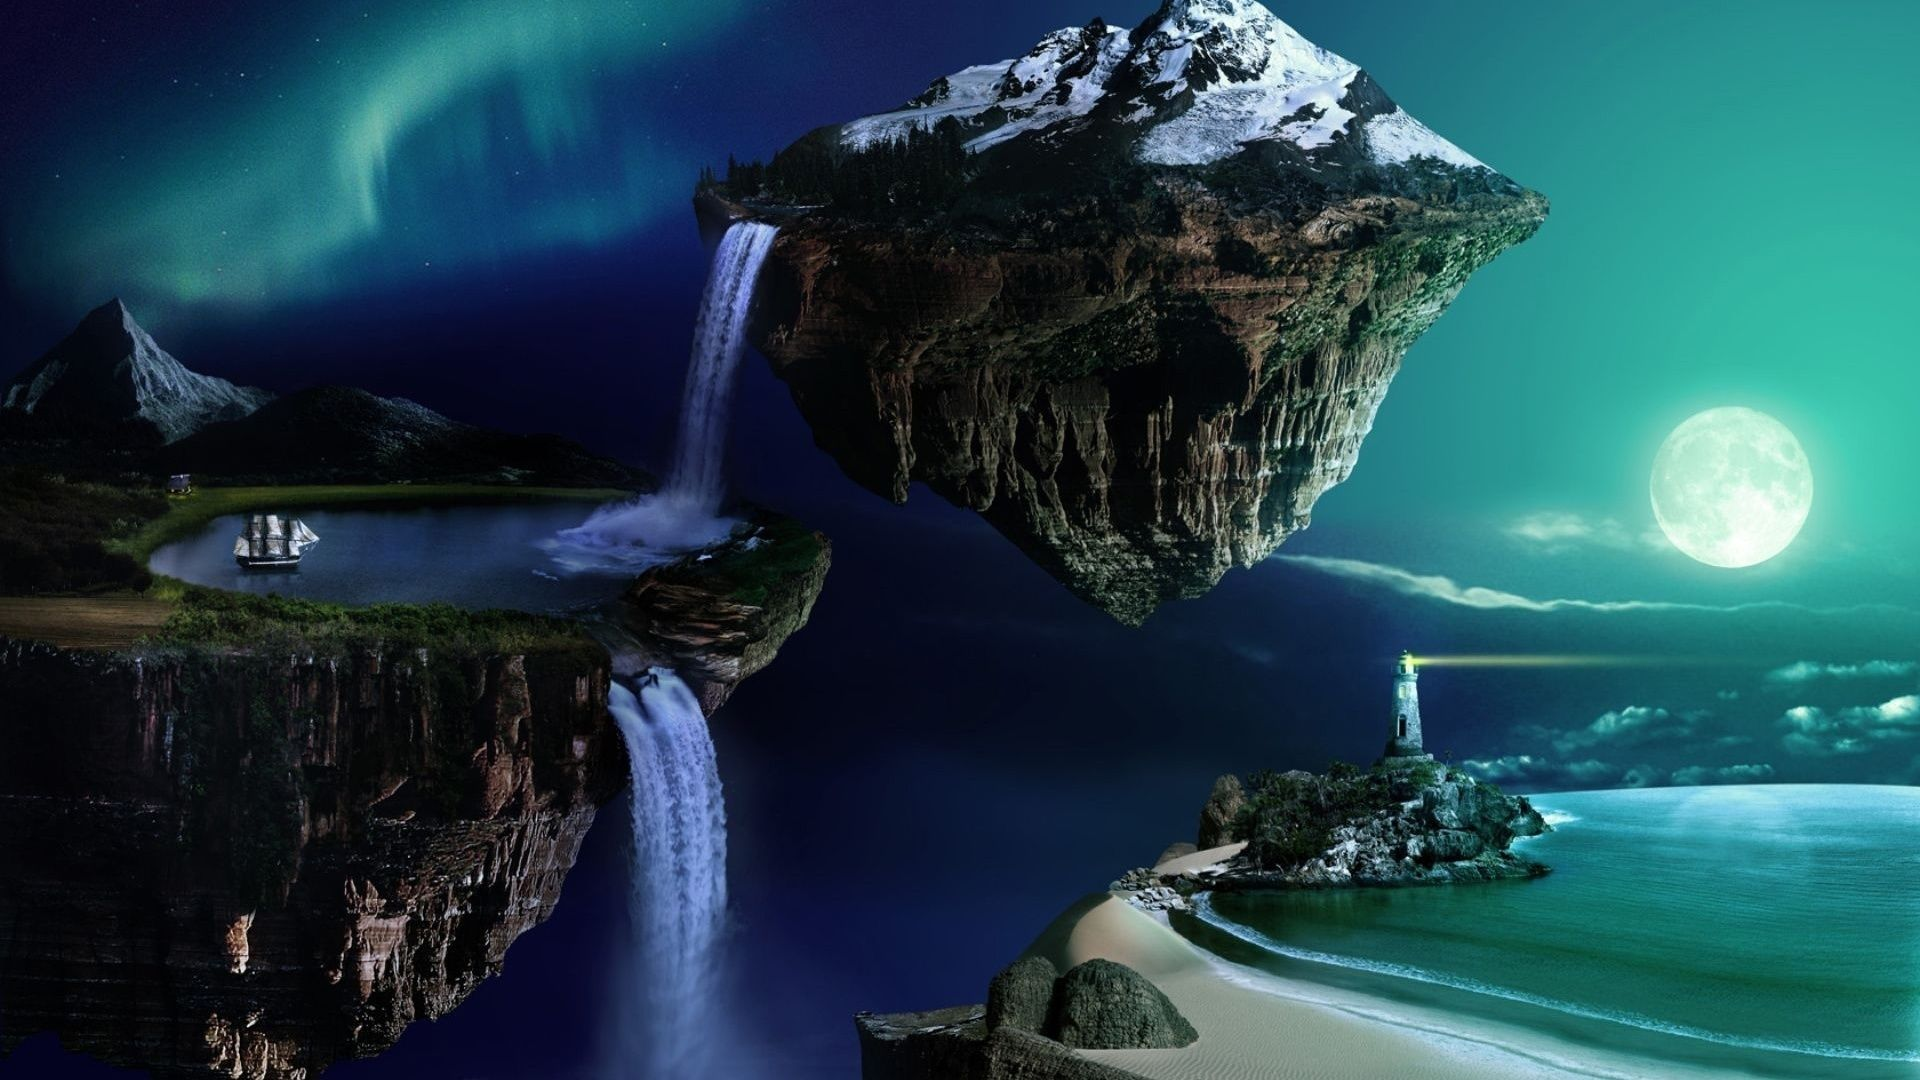 Wallpaper 3d Desktop Flying Island